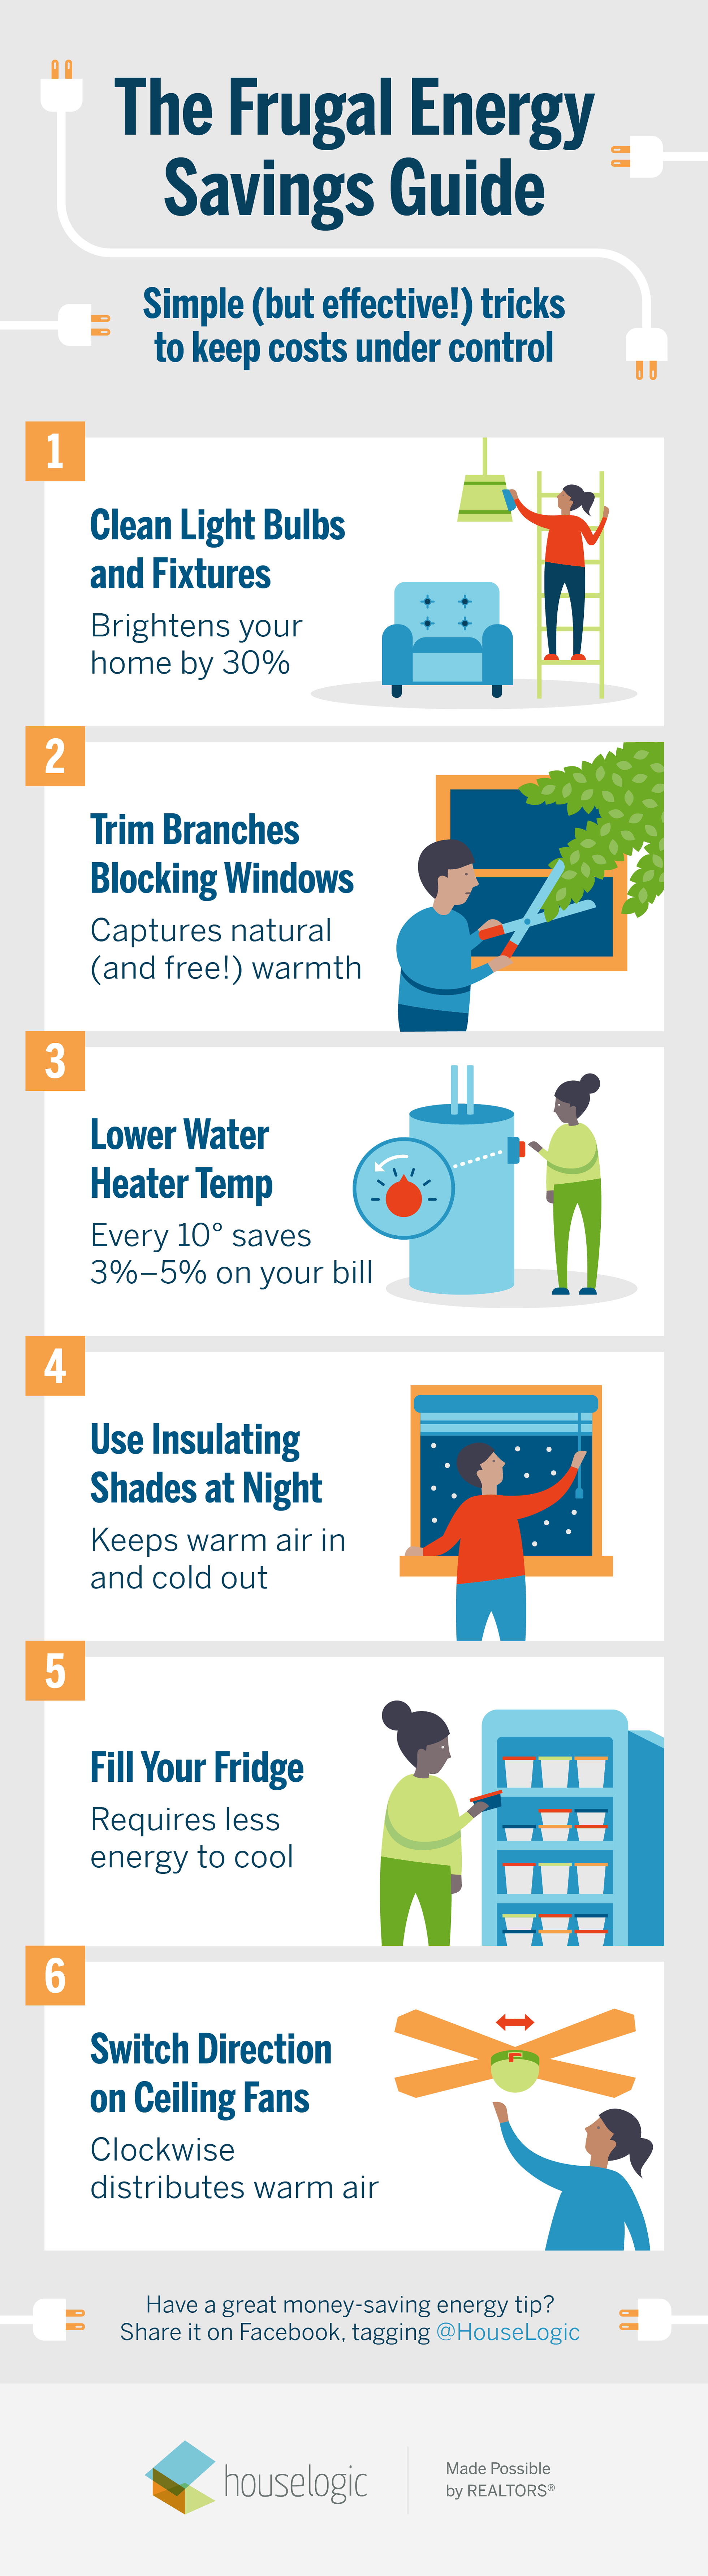 Illustration of The Frugal Energy Savings Guide